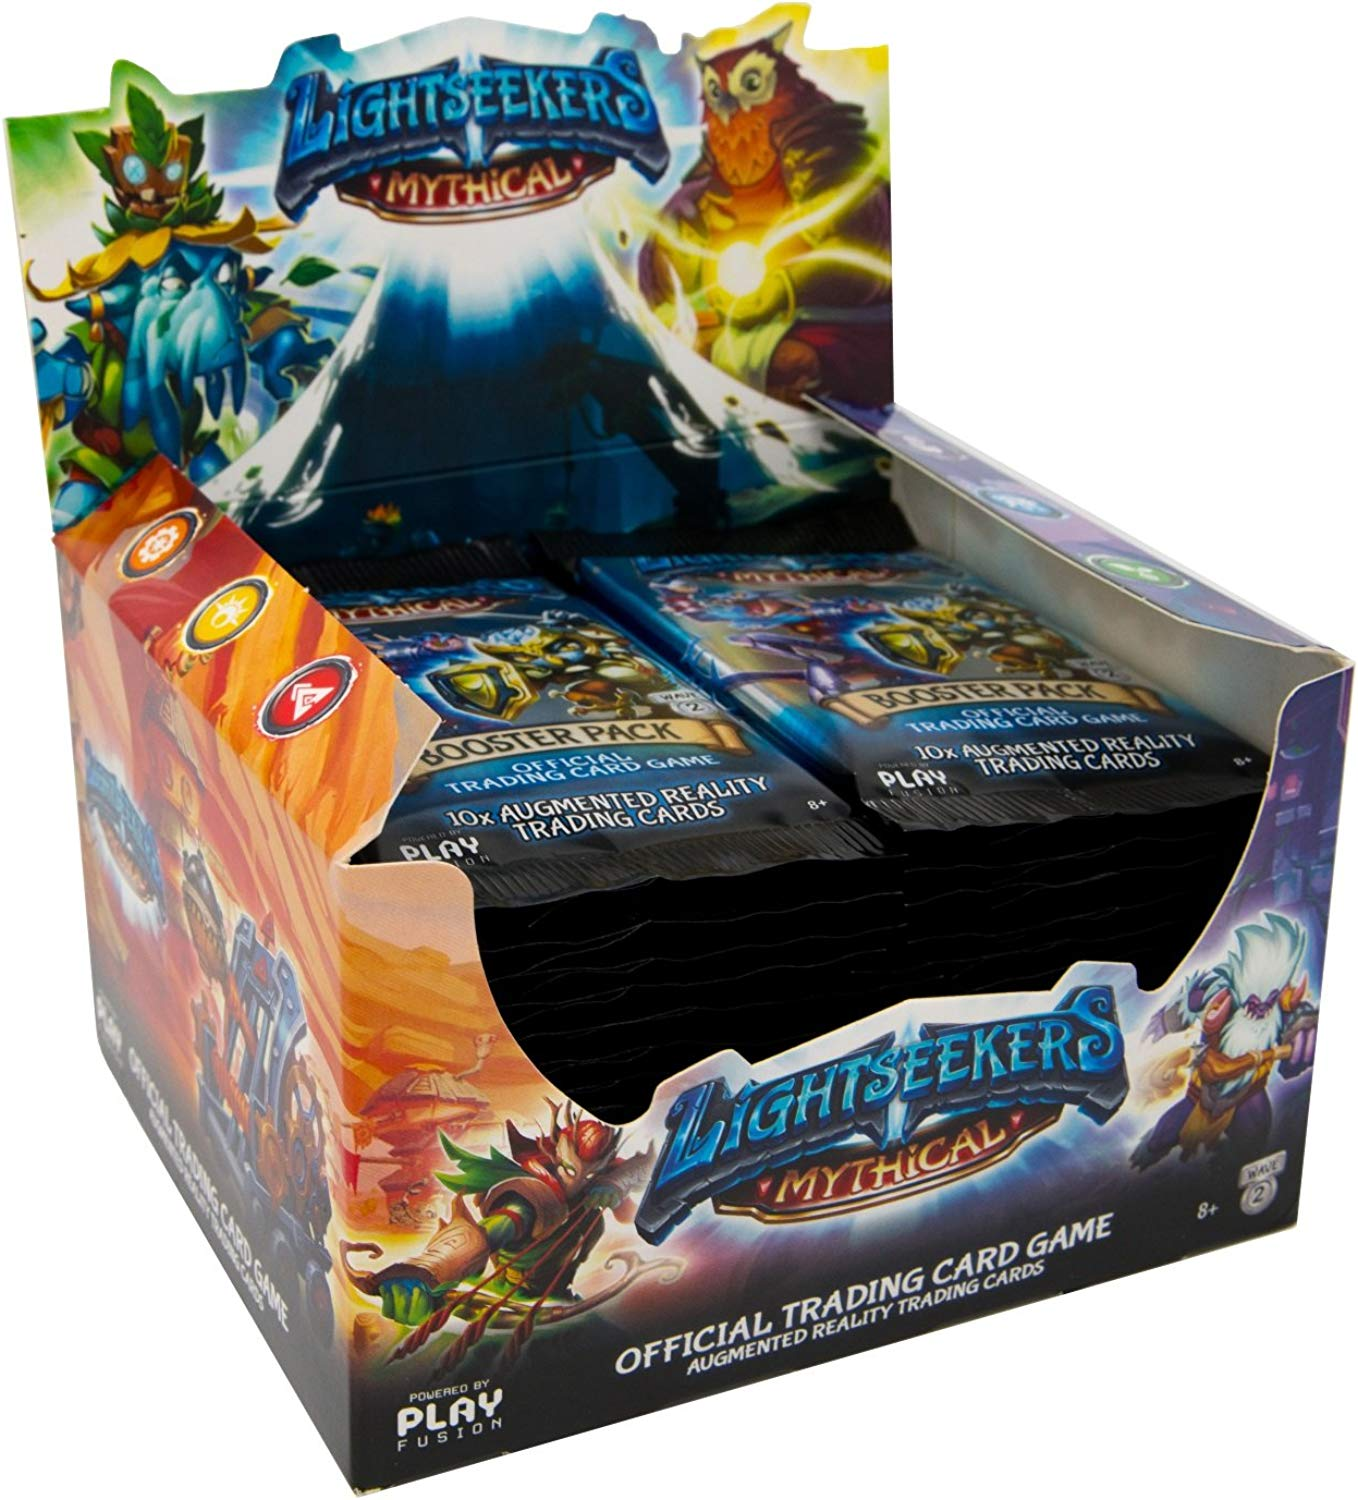 PlayFusion lucieekers TCG Booster Display Wave 2 Mythical (40) inglese Version Trading